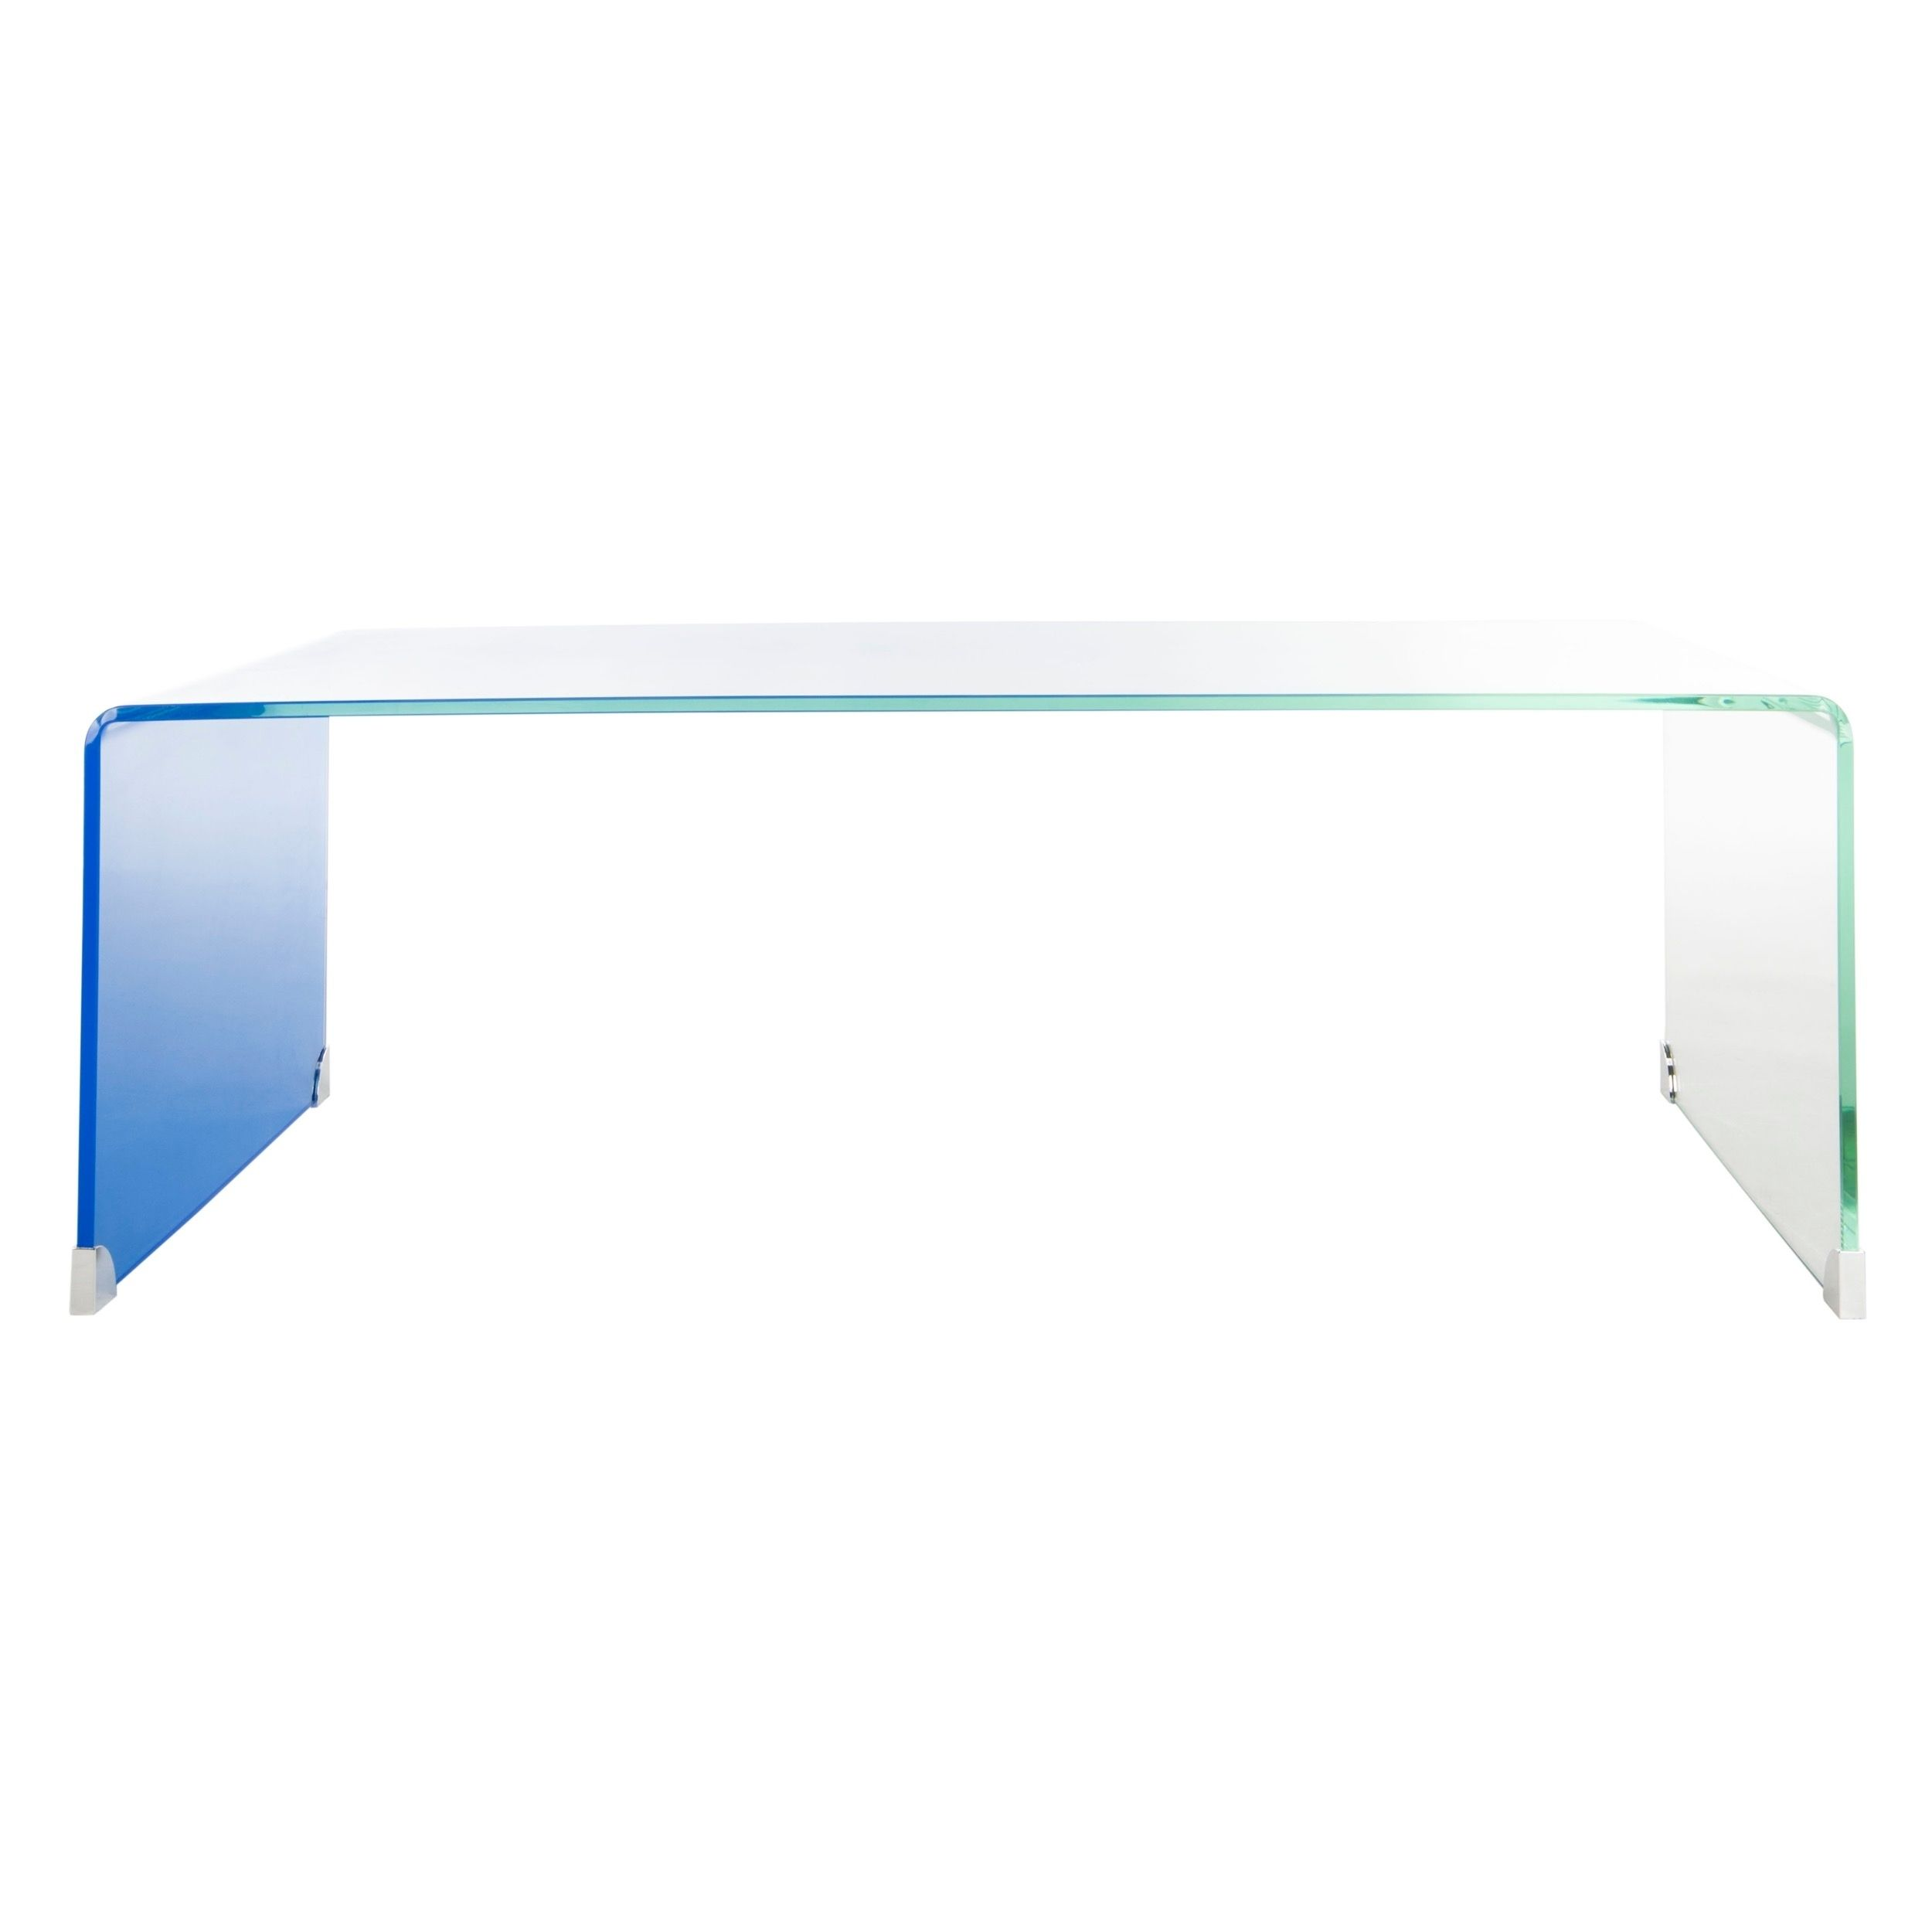 Safavieh Crysta Ombre Glass Coffee Table Clear Blue 47 2 X 25 6 X 16 5 Glass Coffee Table Rectangle Glass Coffee Table Rectangular Coffee Table [ 2500 x 2500 Pixel ]